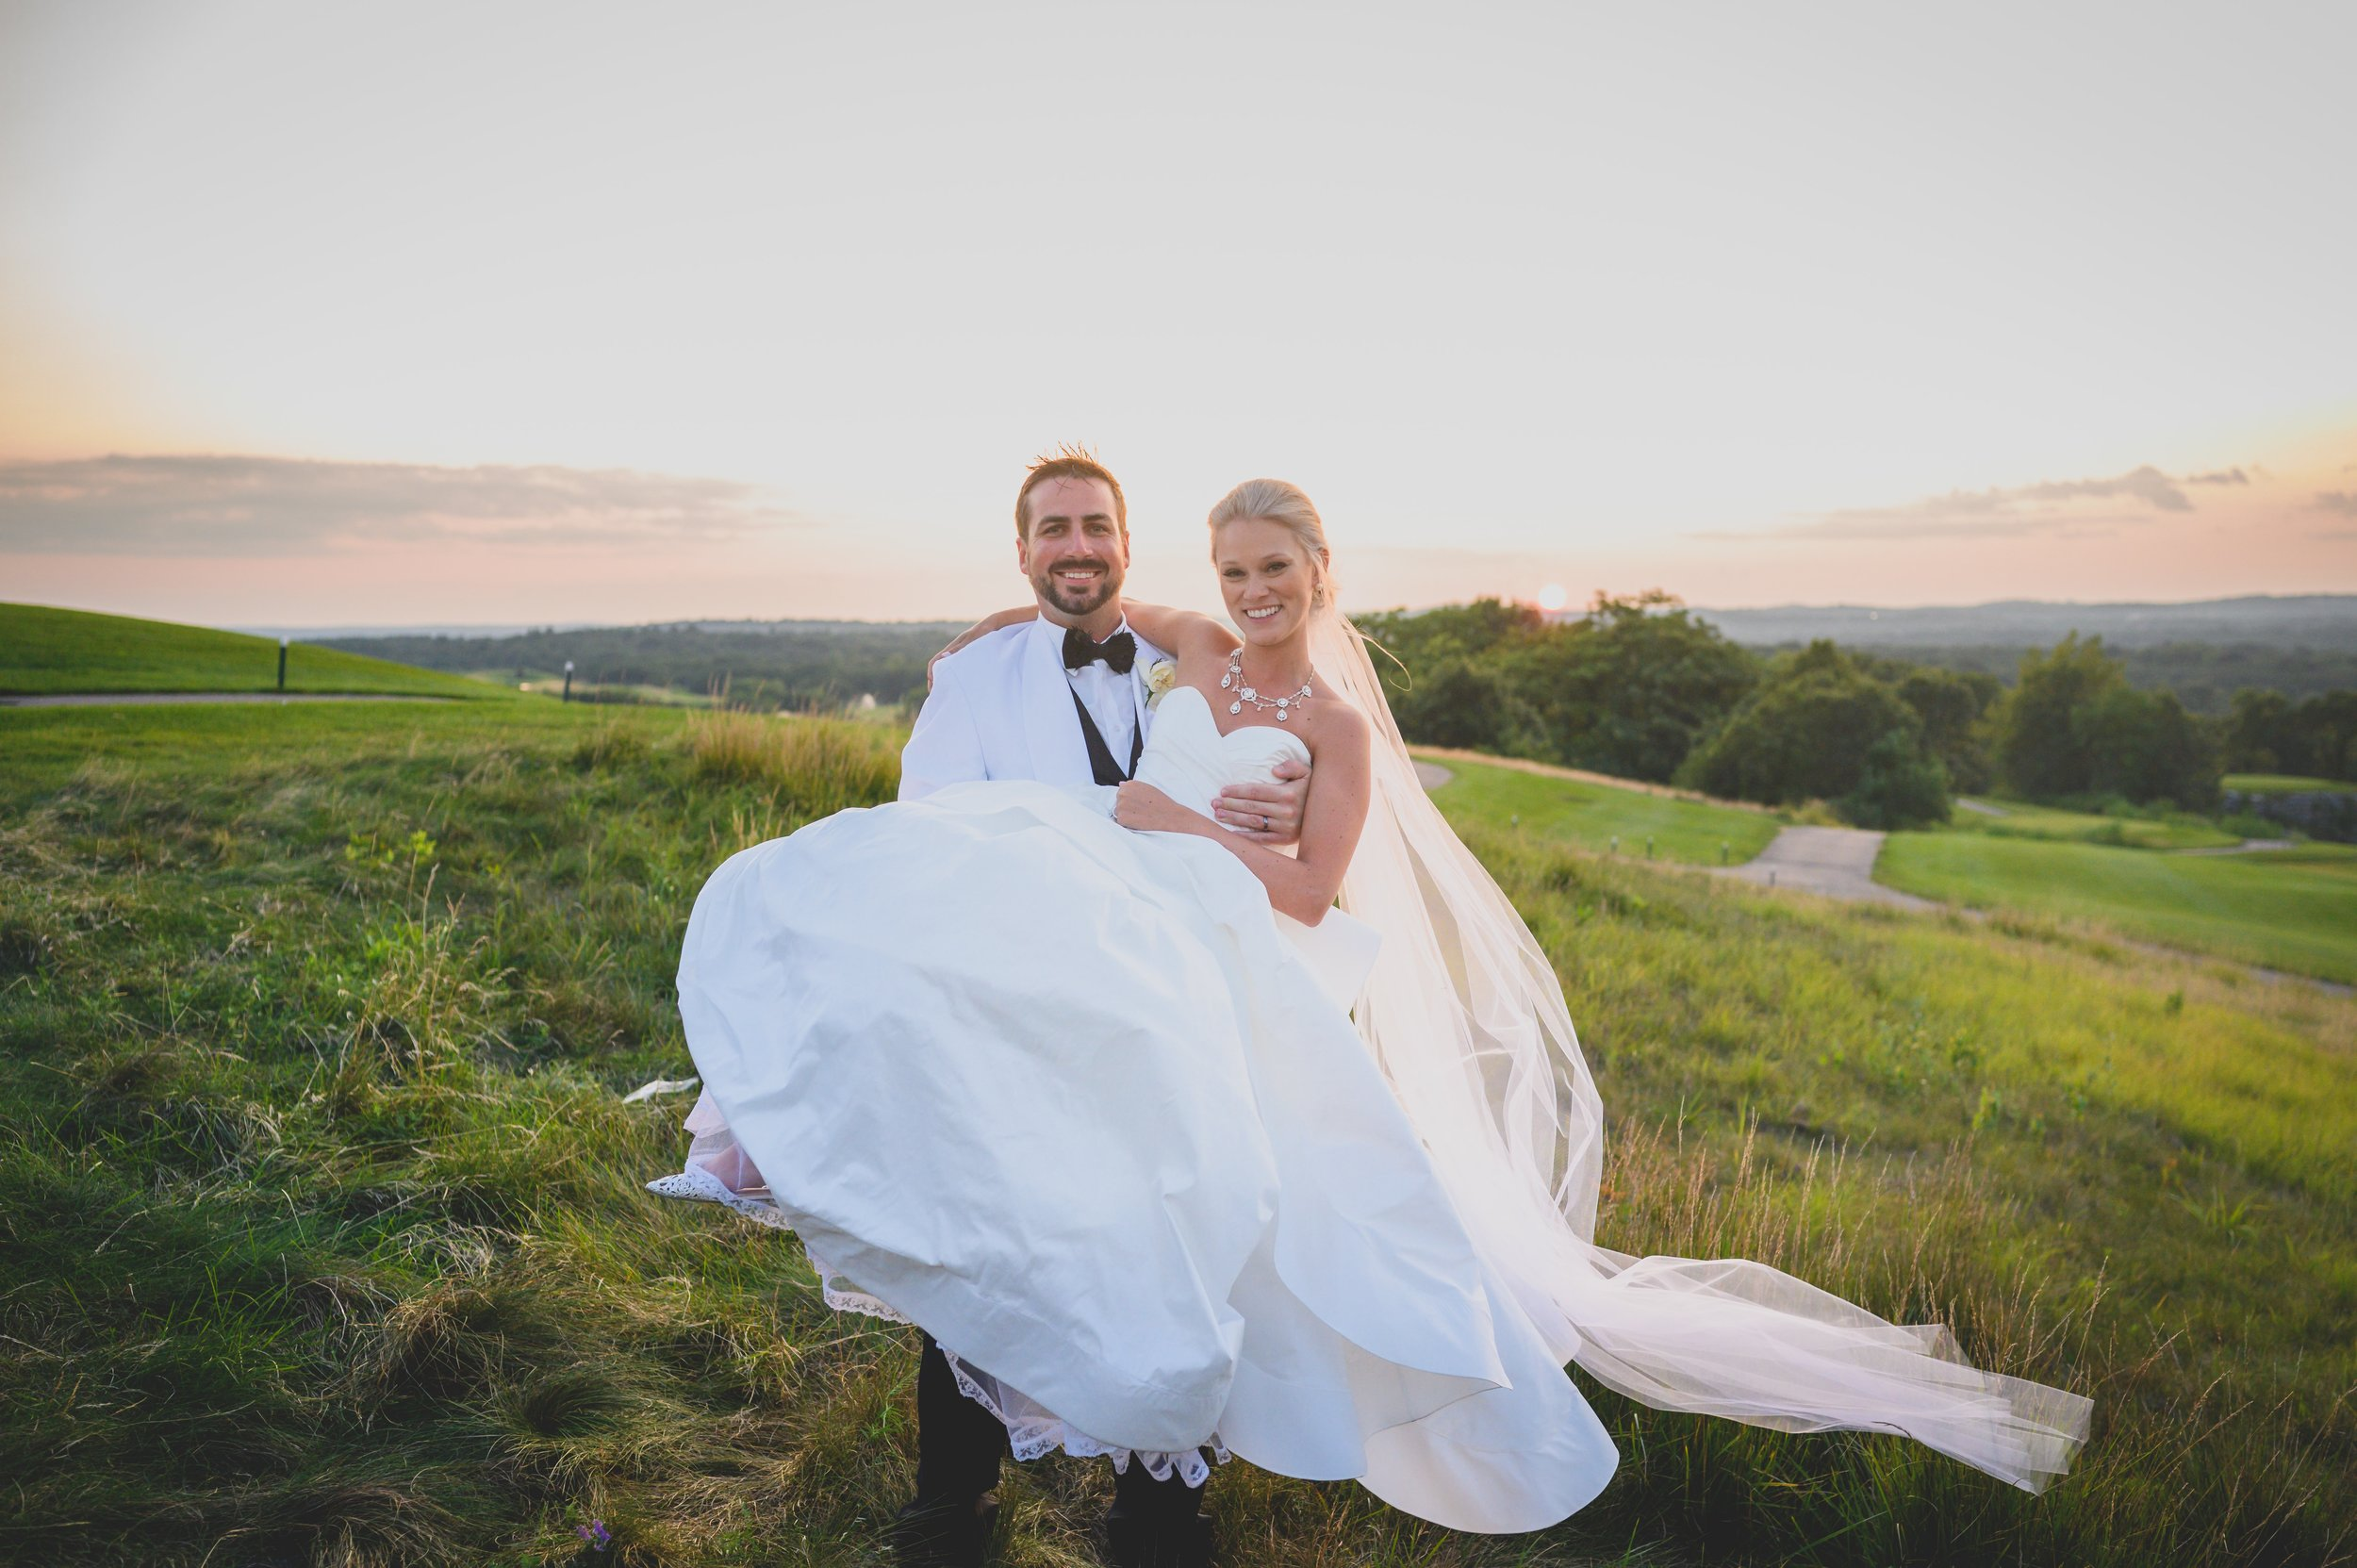 A groom in a white tuxedo holding his bride in his arms on a green golf course.